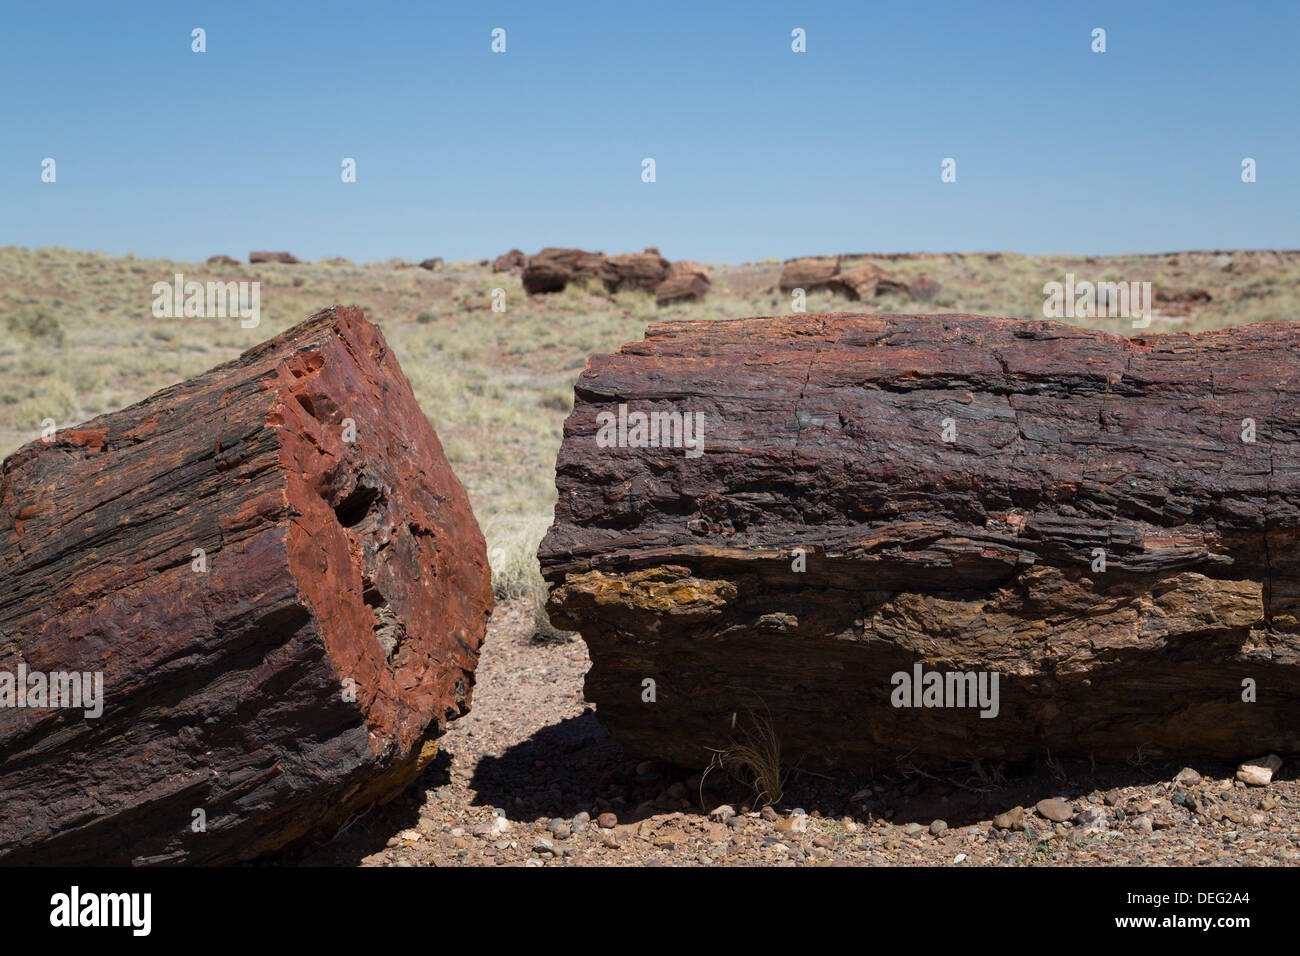 Petrified logs from the late Triassic period, Long Logs Trail, Petrified Forest National Park, Arizona, USA - Stock Image